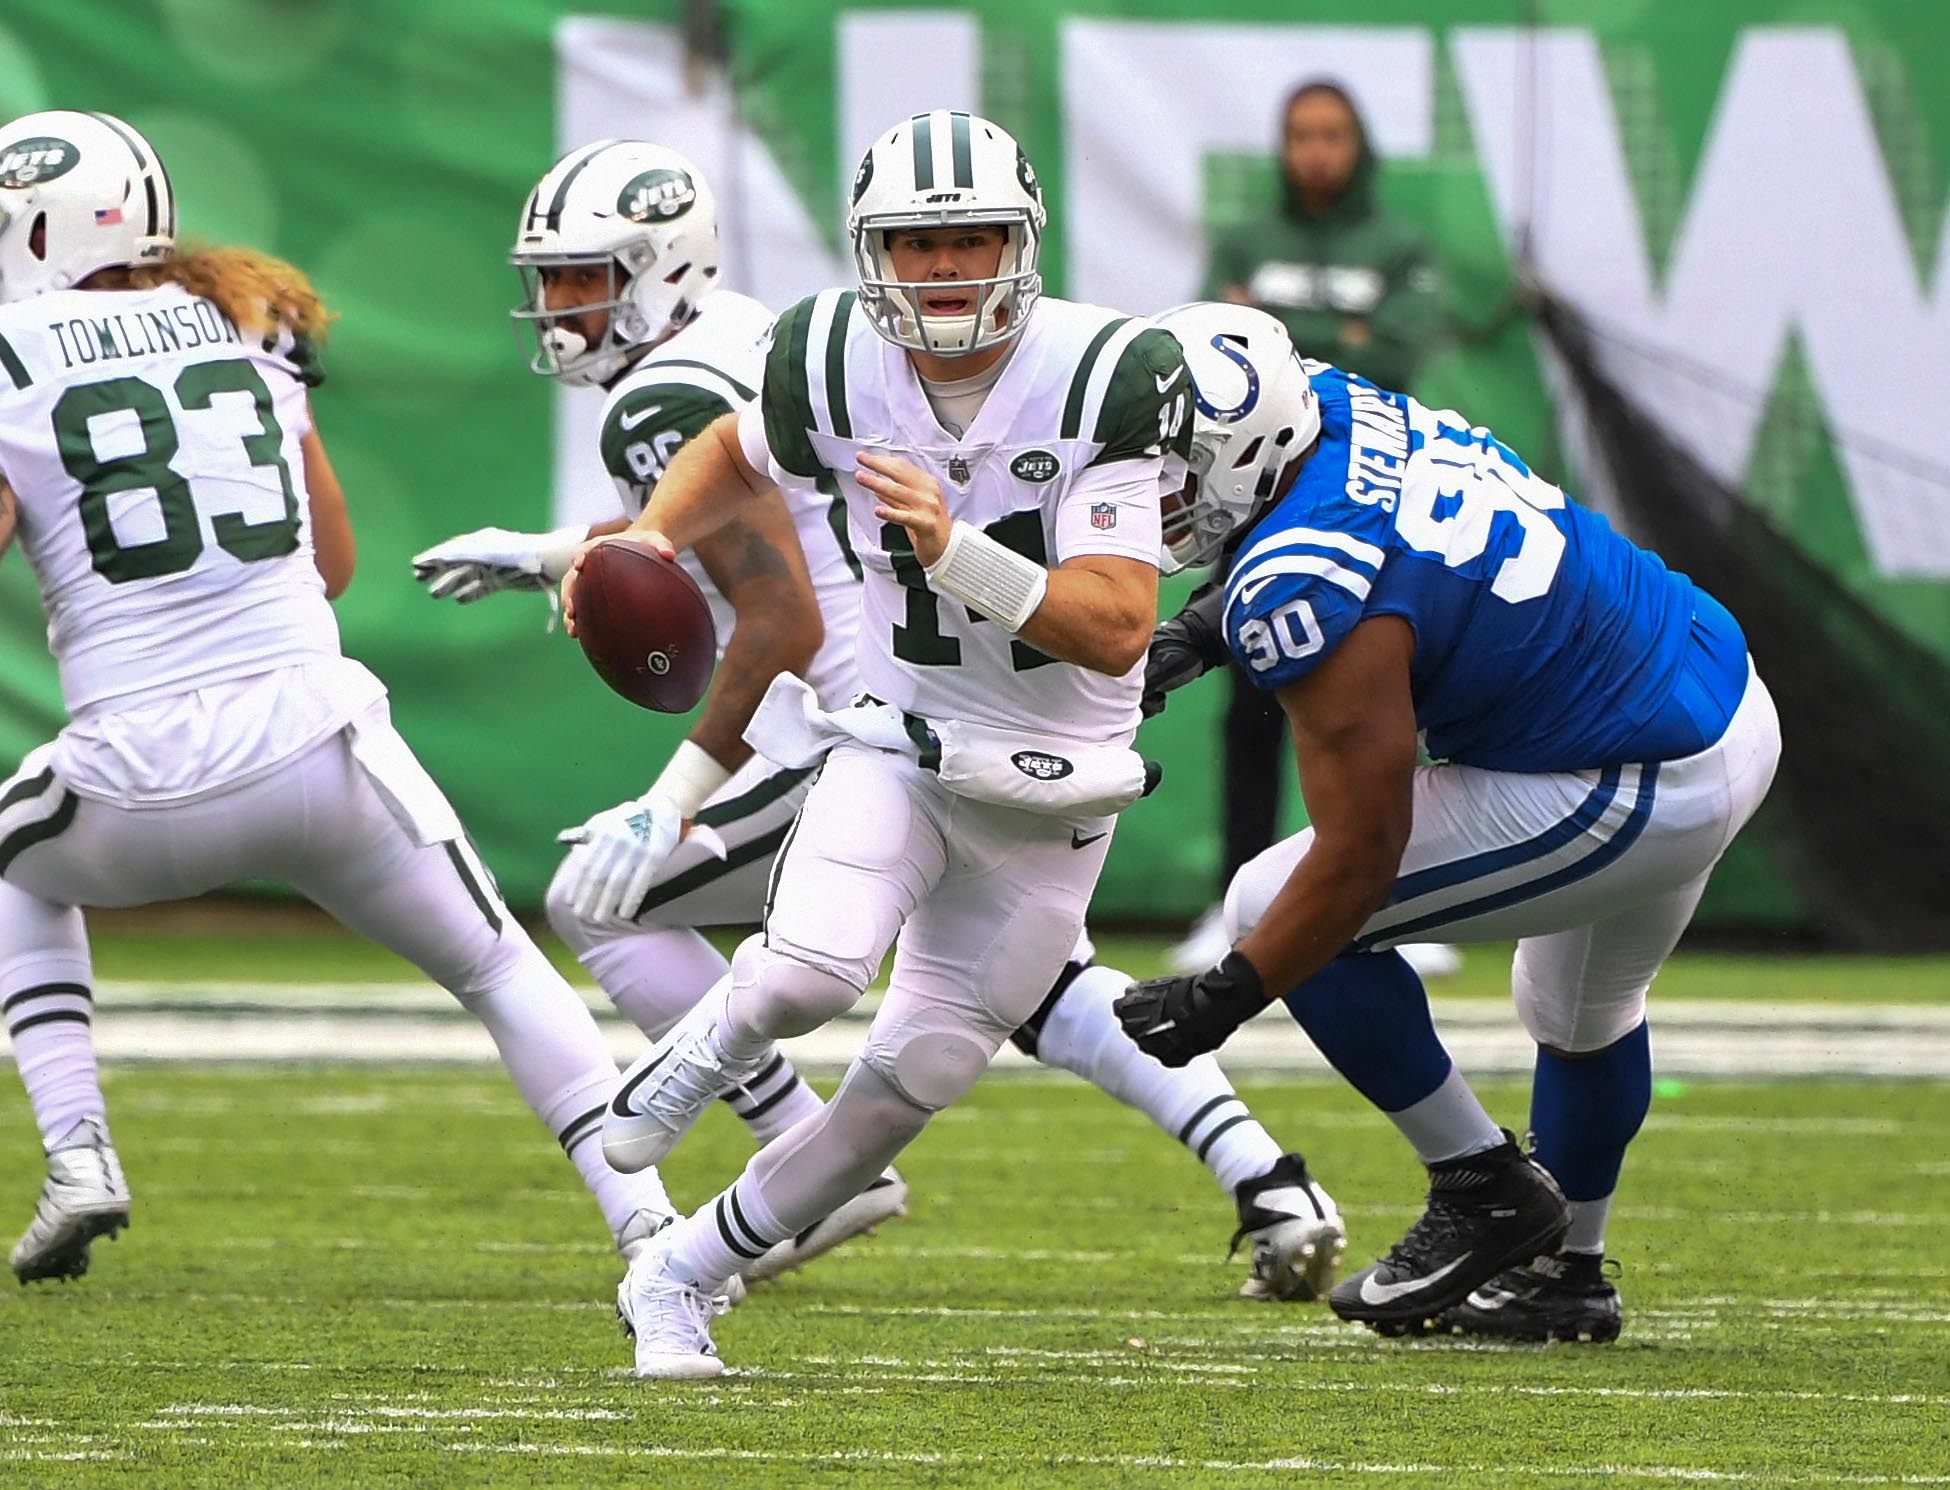 NFL: Indianapolis Colts at New York Jets